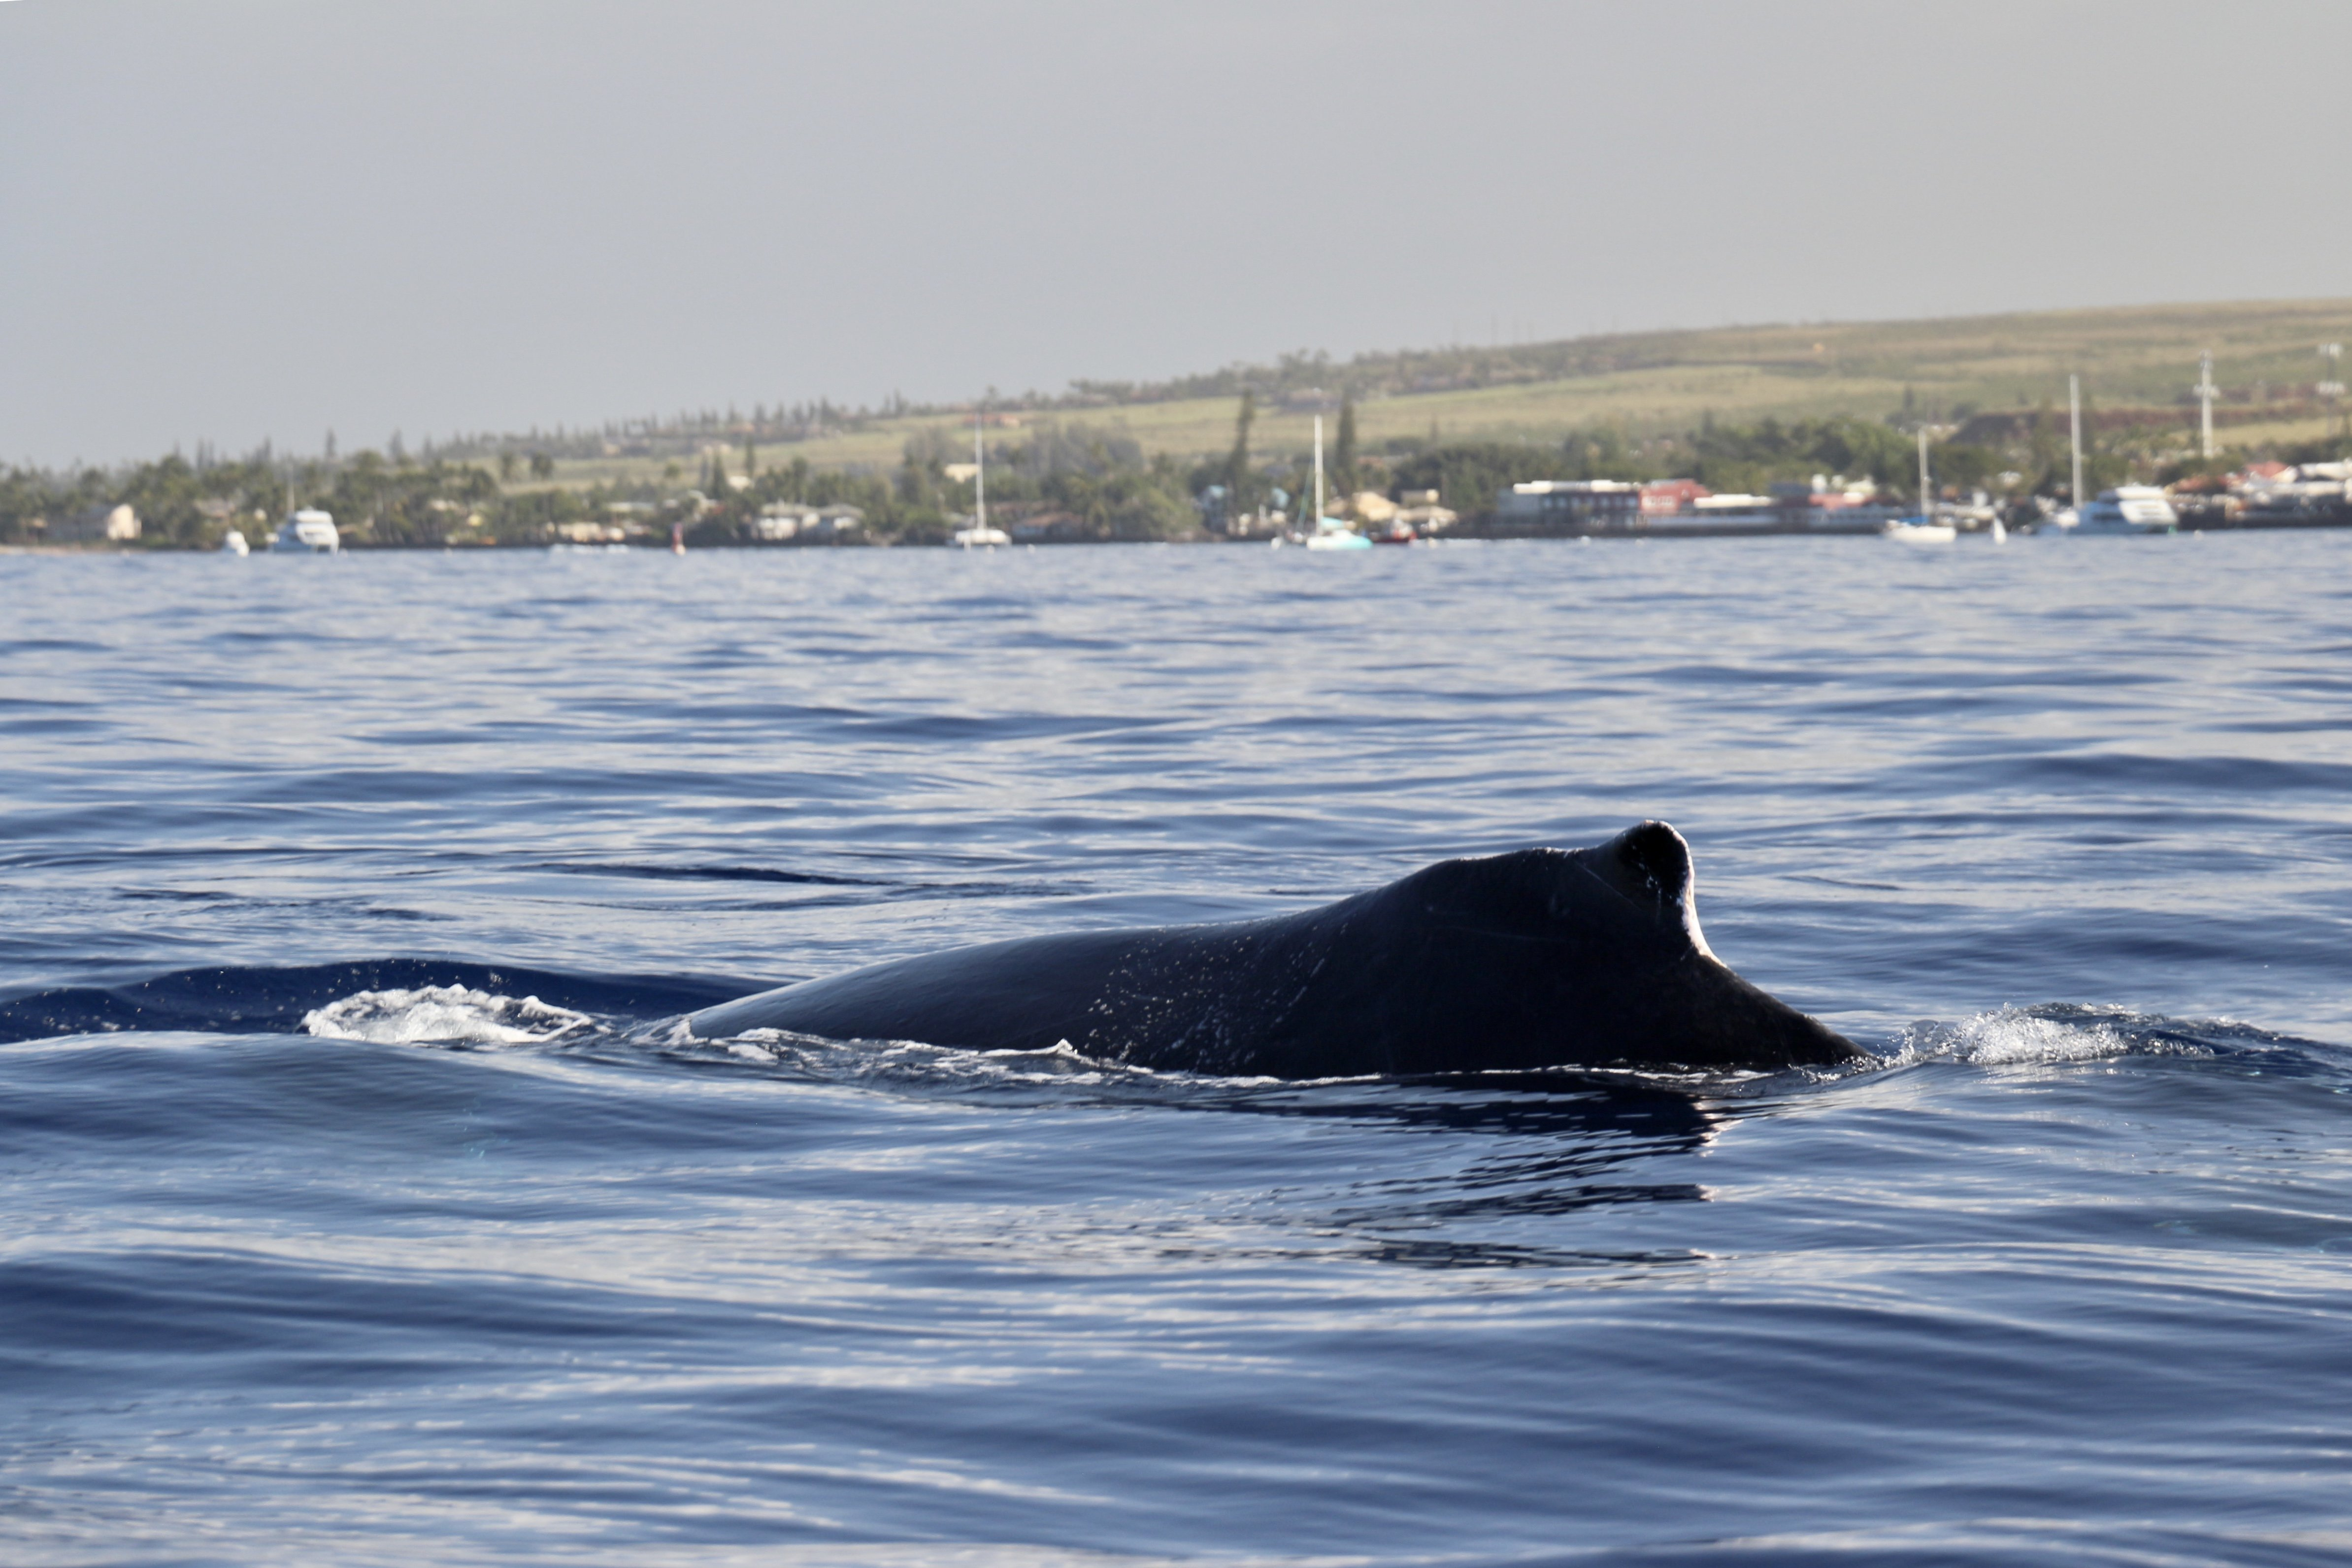 Photo of the hump on a North Pacific humpback whale